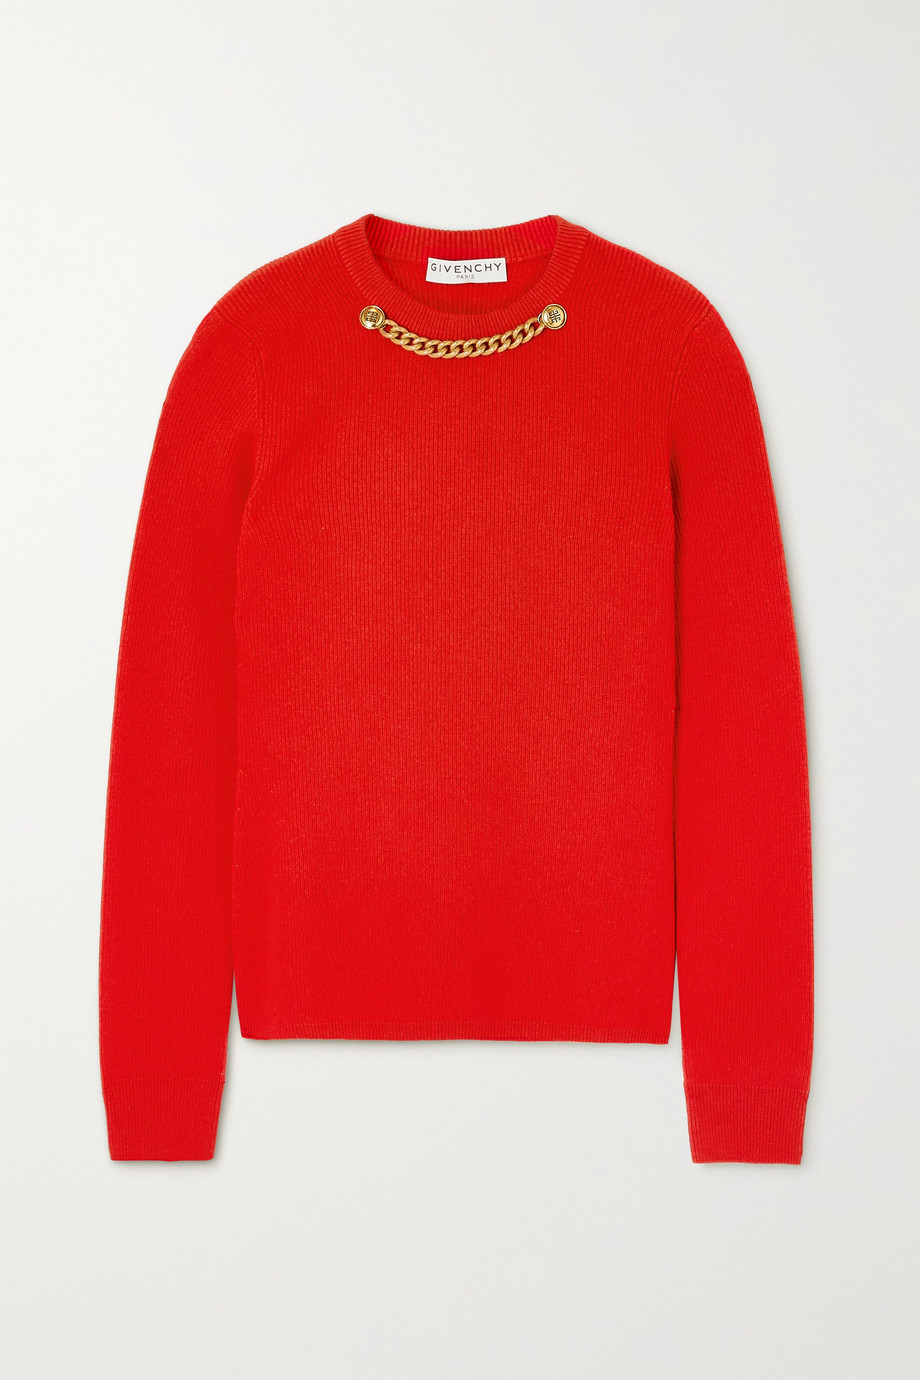 GIVENCHY Chain-embellished ribbed wool and cashmere-blend sweater